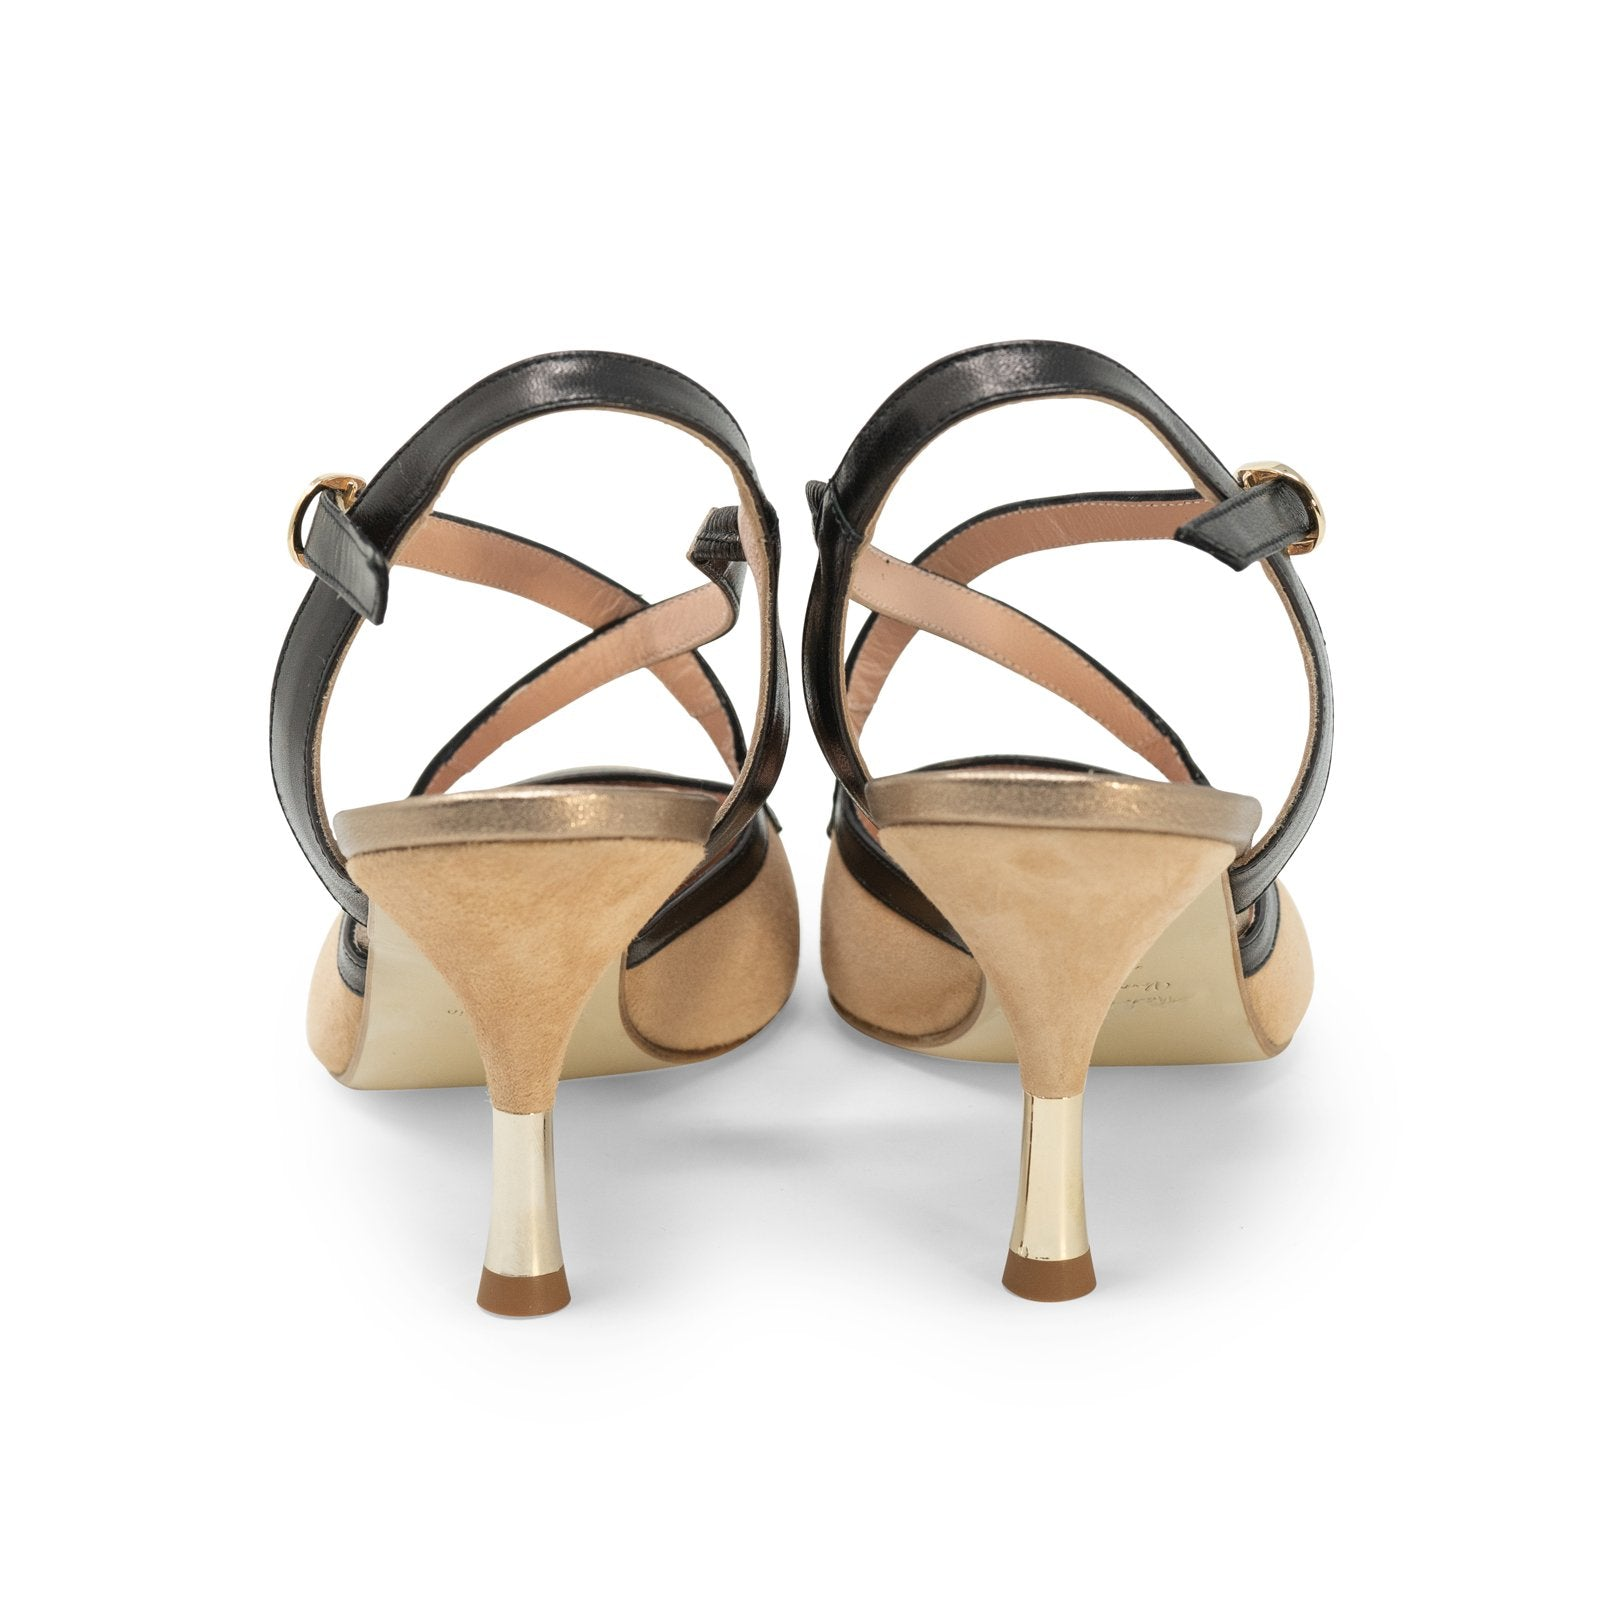 Women Pointed-Toe Backsling Pumps in Camel